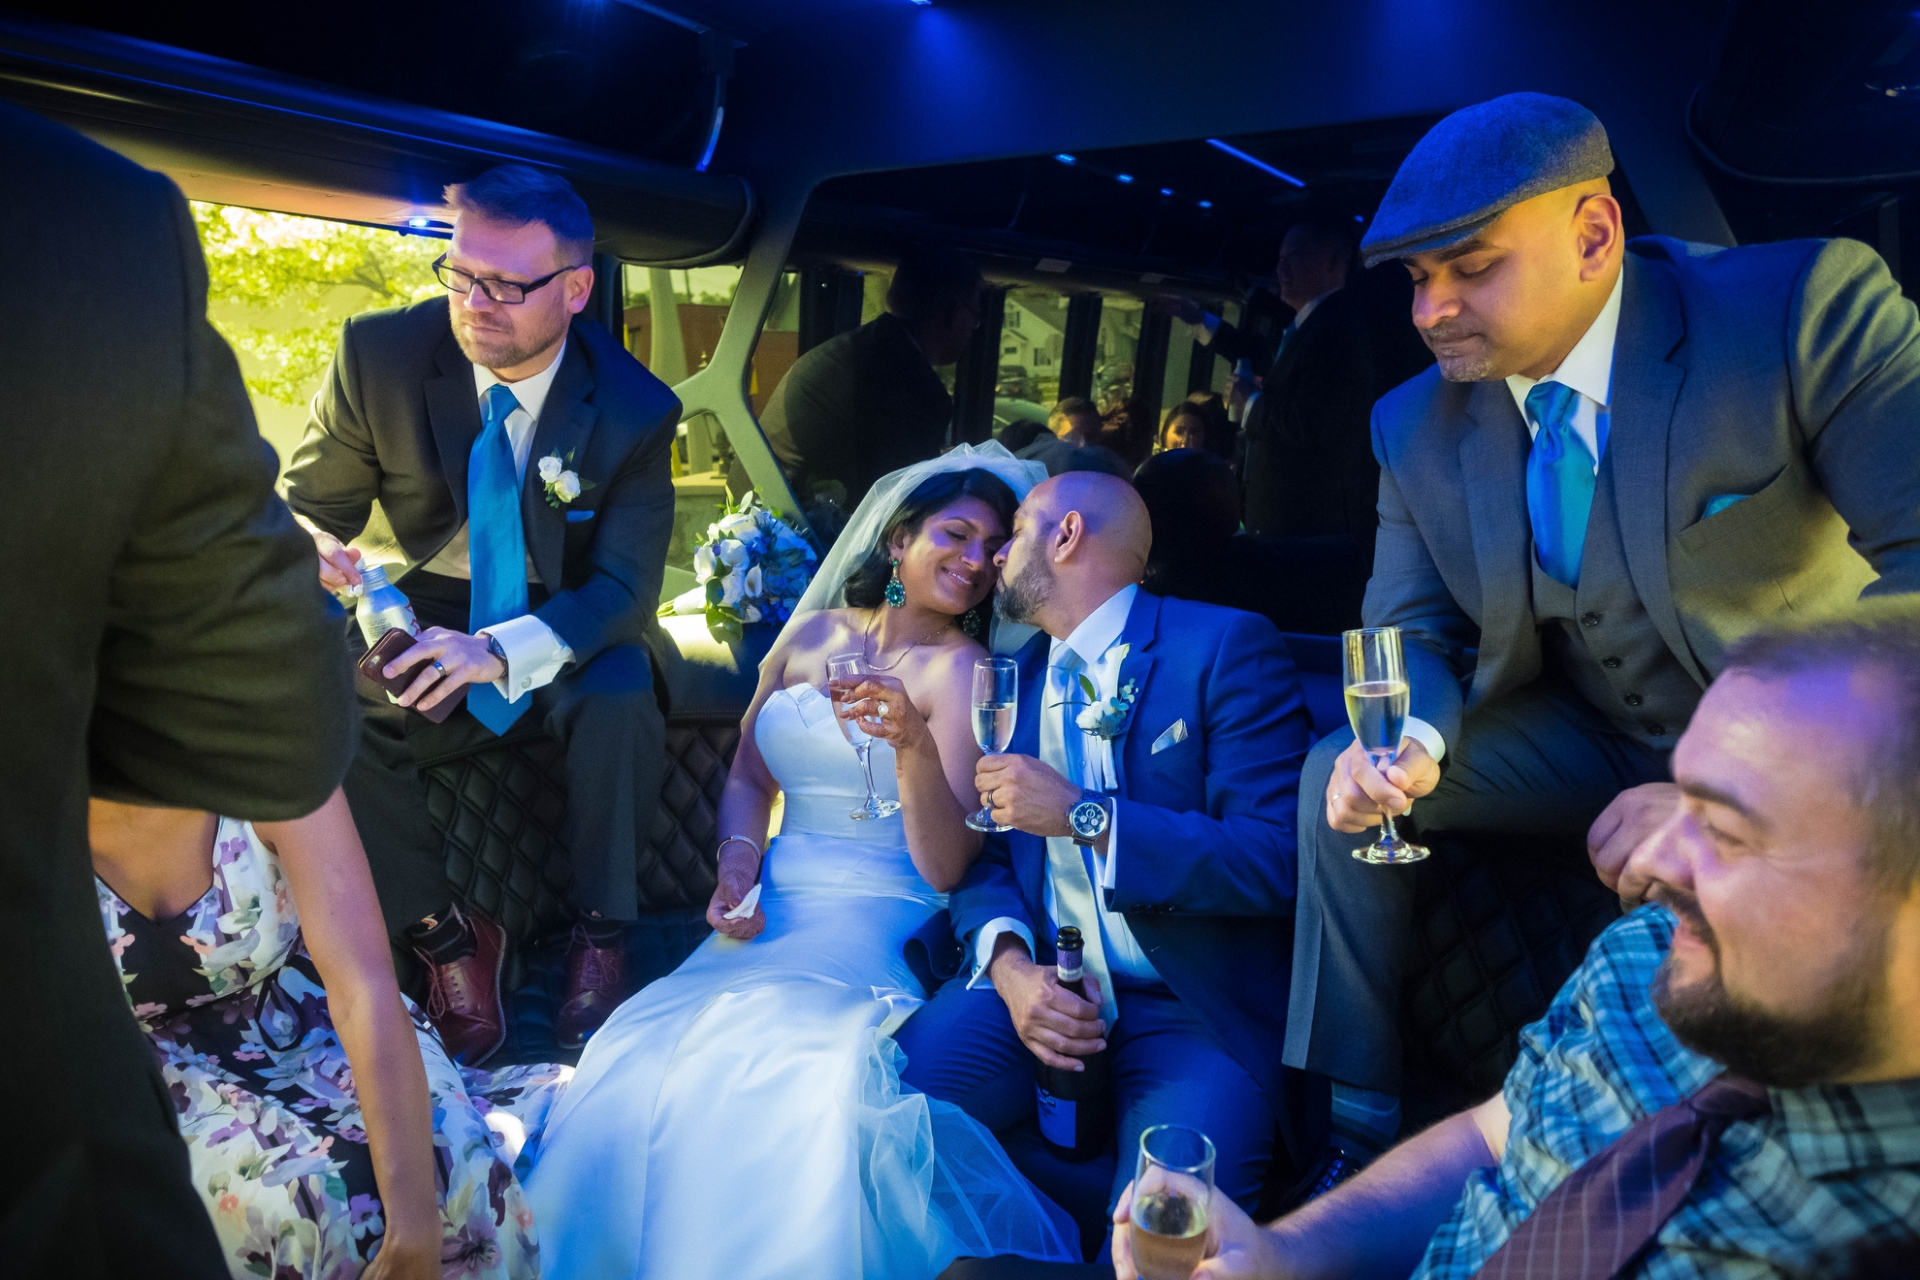 Ray Iavasile, of Michigan, is a wedding photographer for Plymouth Manor